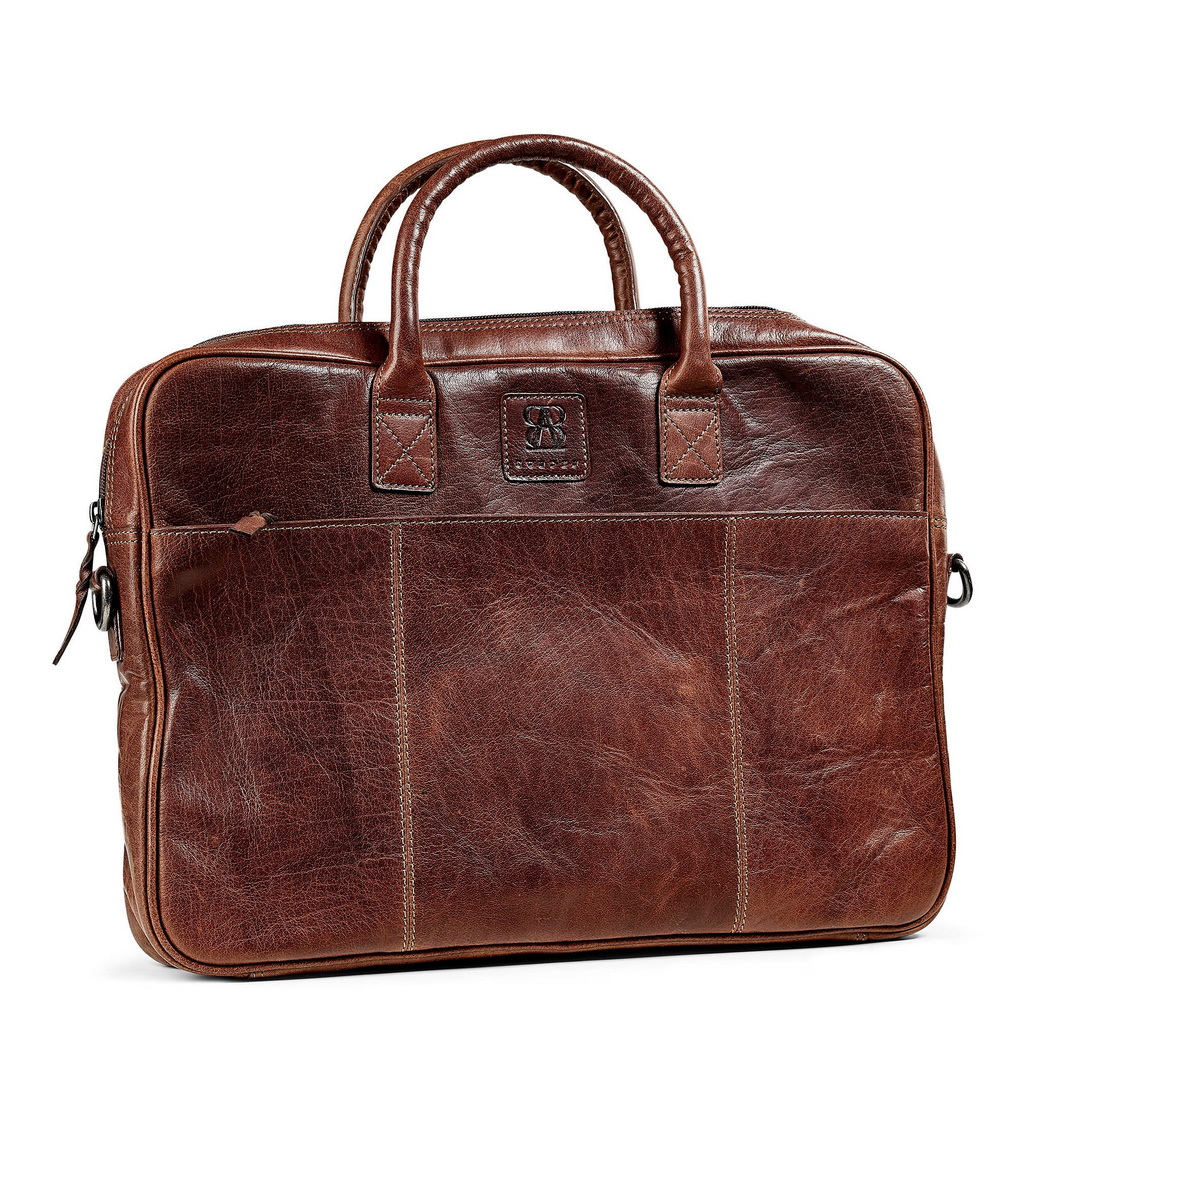 Portfolio / Document Bag of Exclusive Leather from B away